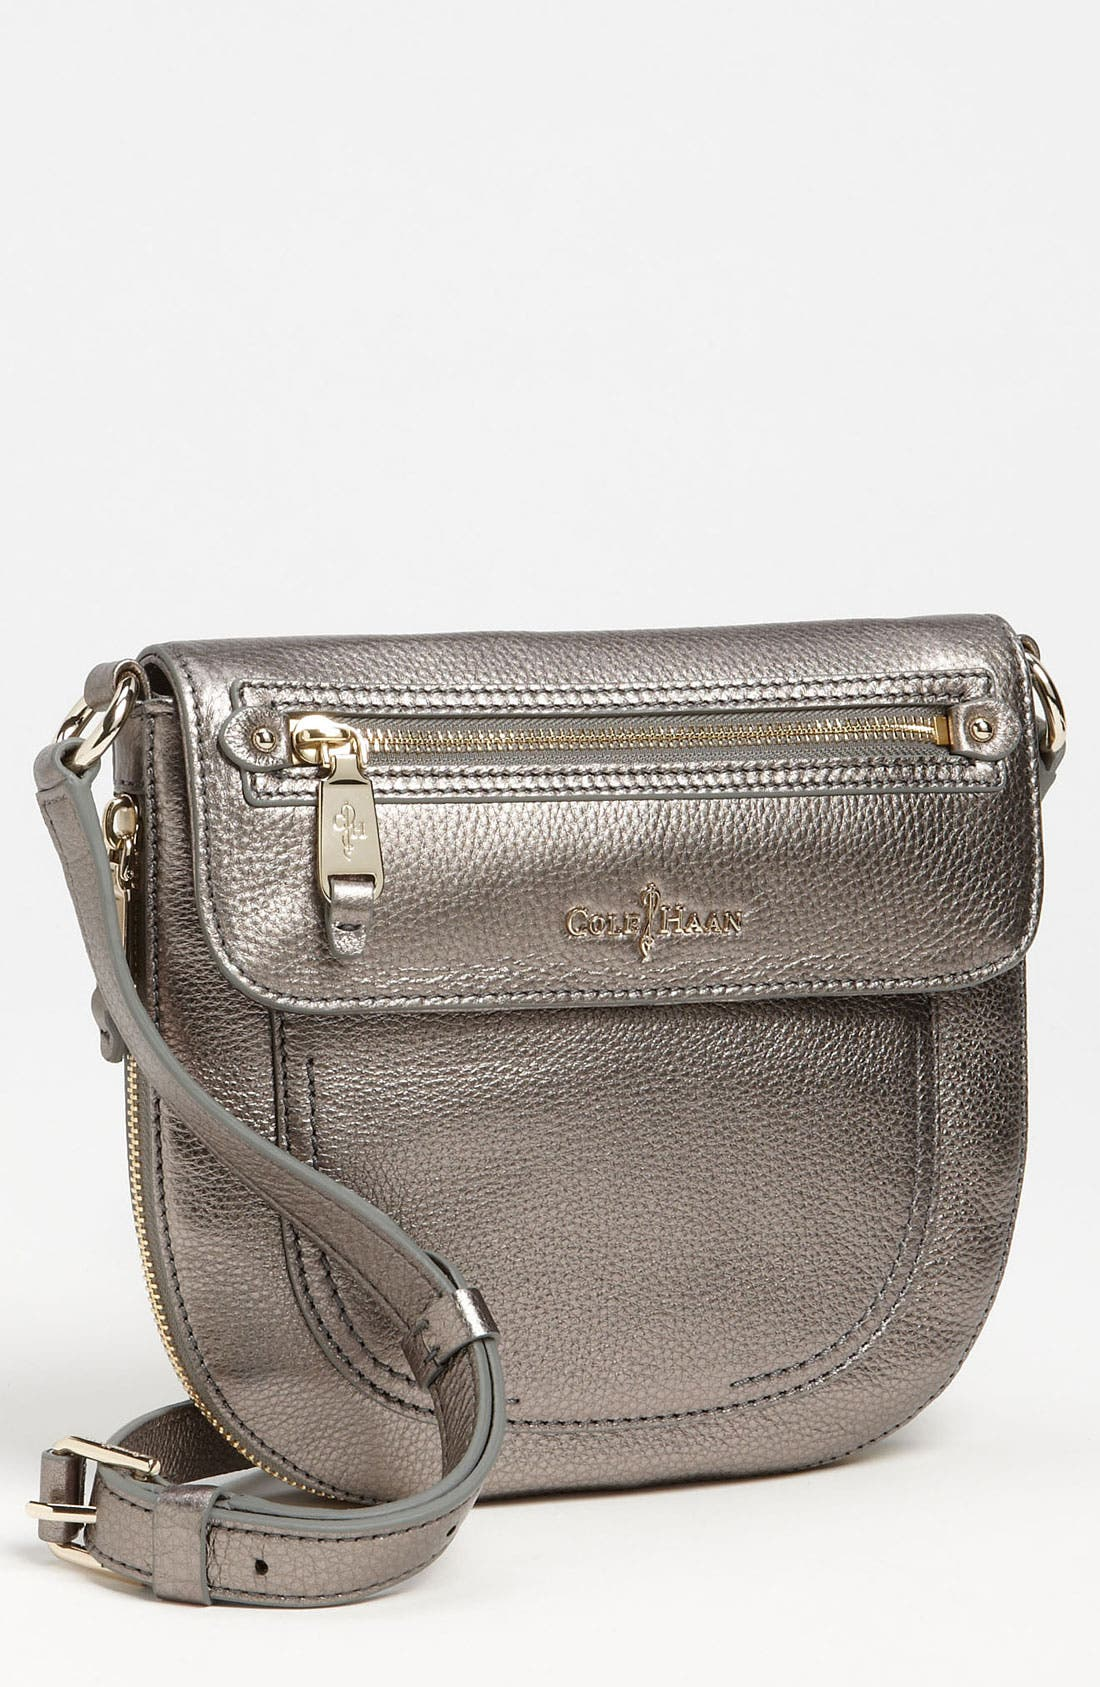 Main Image - Cole Haan 'Linley - Canteen' Crossbody Bag